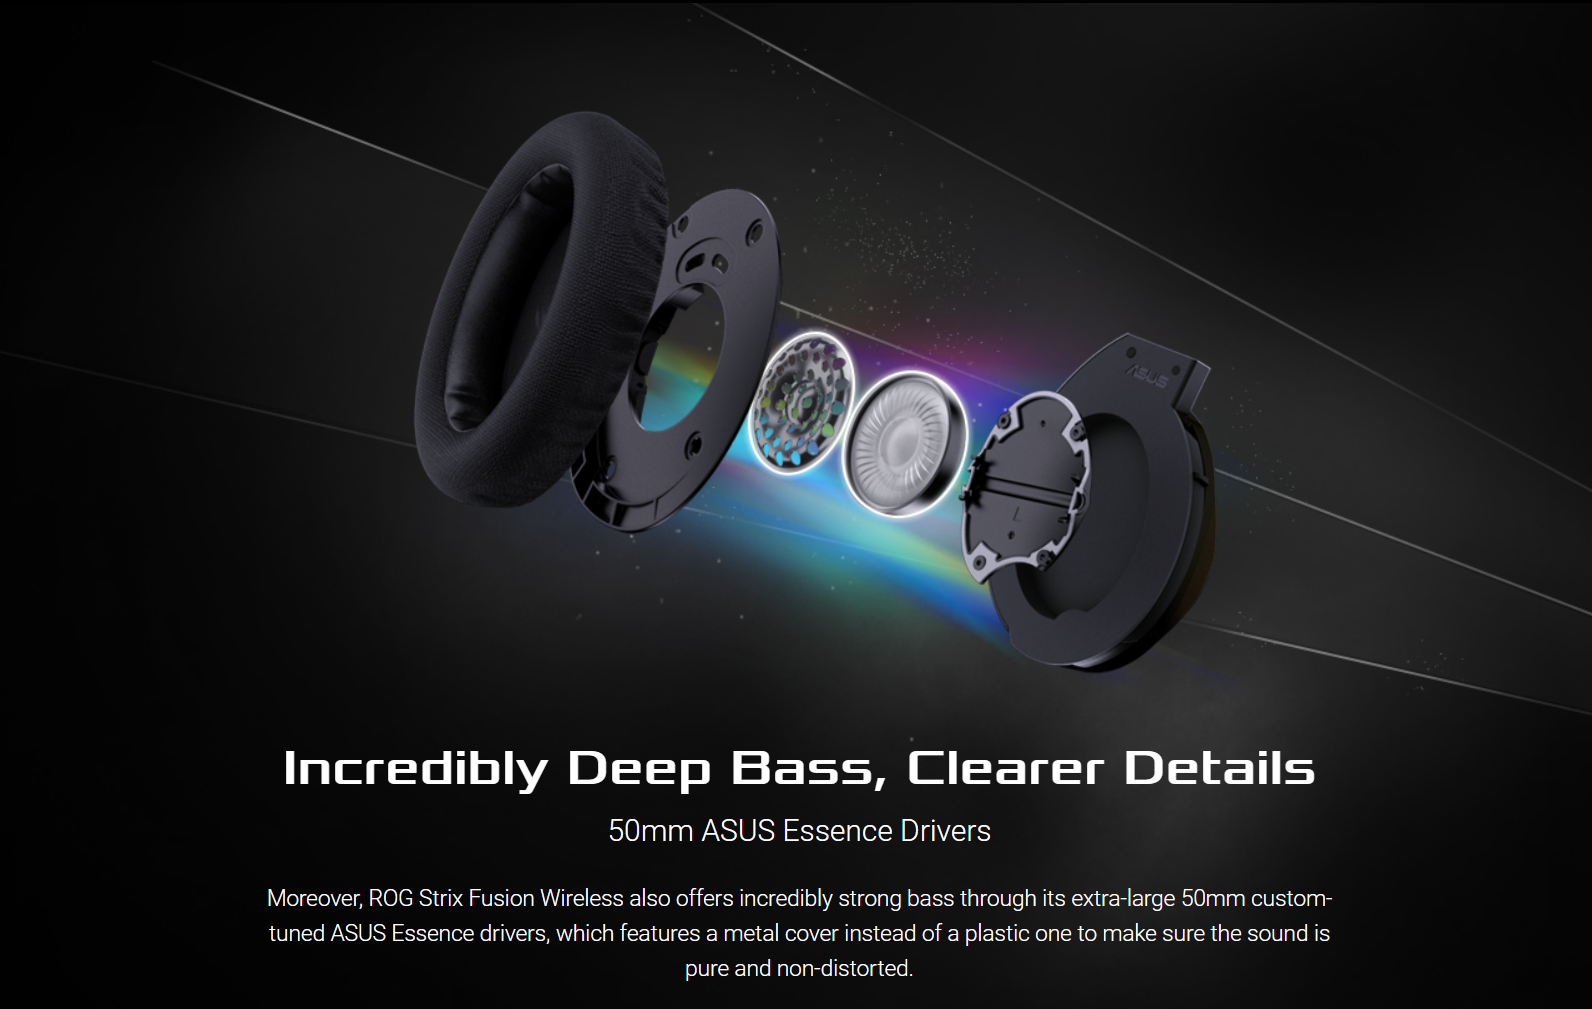 Incredibly Deep Bass, Clearer Details - 50mm ASUS Essence Drivers Moreover, ROG Strix Fusion Wireless also offers incredibly strong bass through its extra-large 50mm custom-tuned ASUS Essence drivers, which features a metal cover instead of a plastic one to make sure the sound is pure and non-distorted.